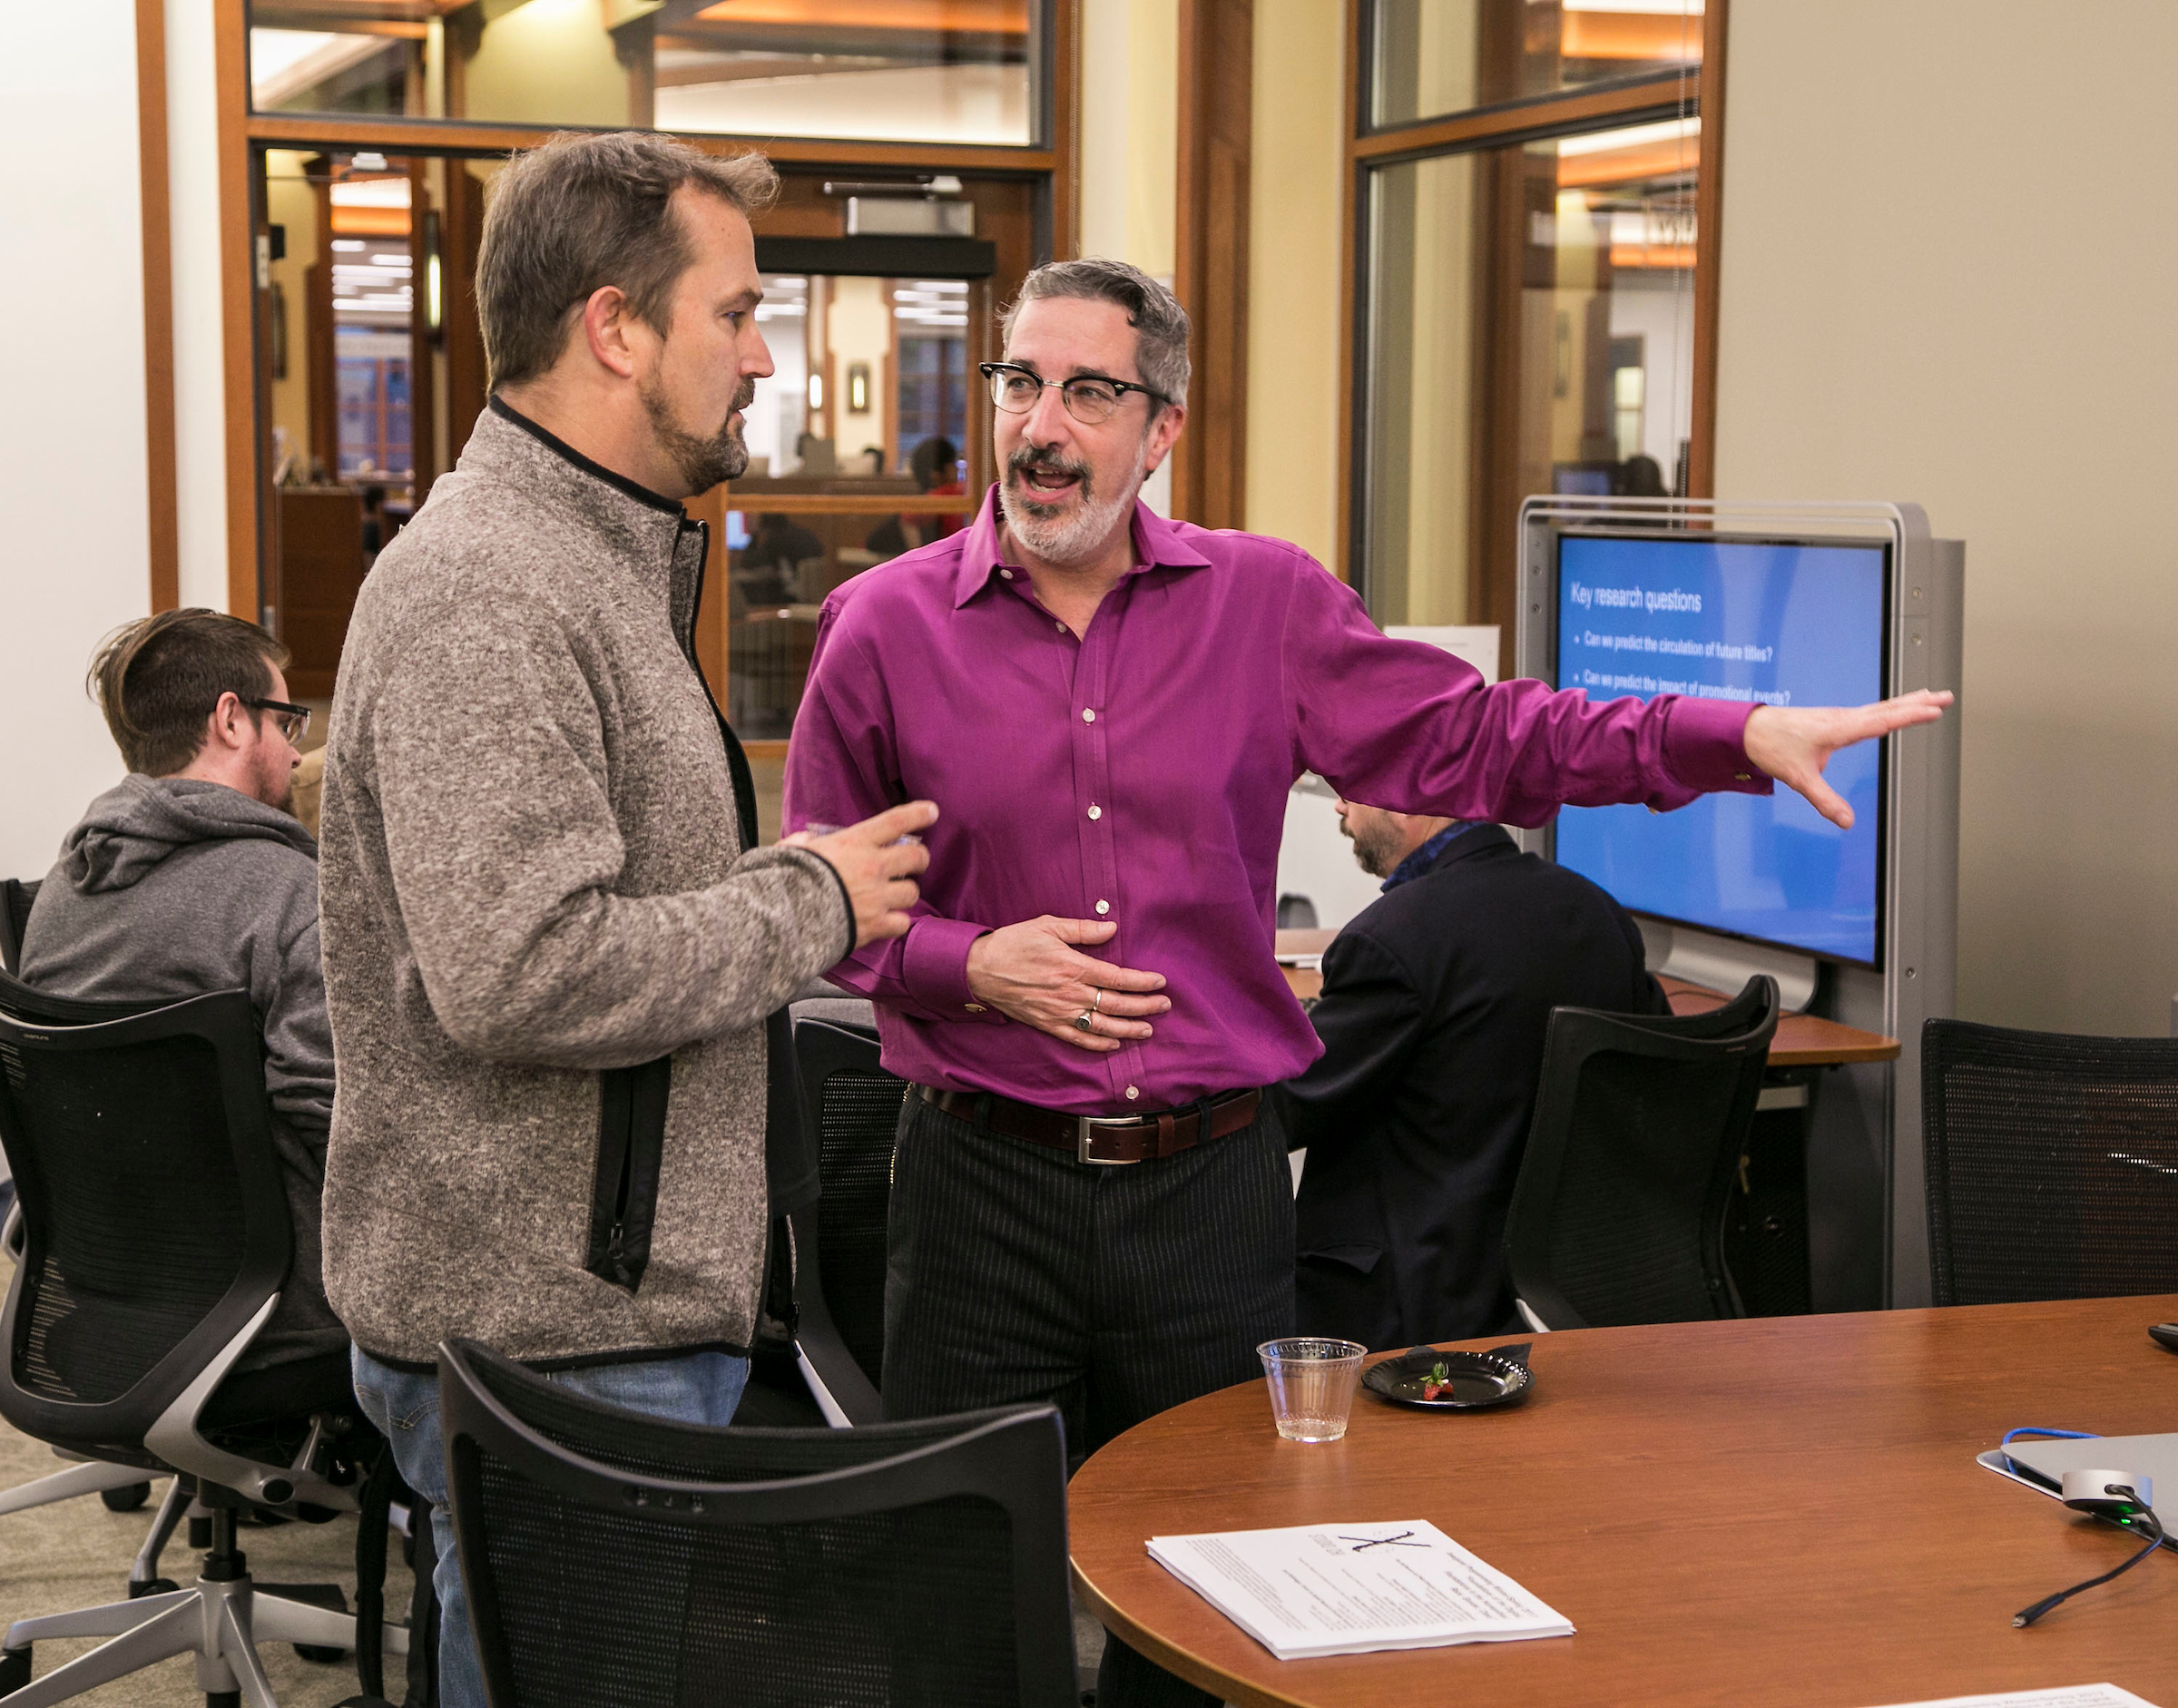 Alec Brownlow, associate professor of geography, and Paul Jaskot, director of Studio χ (CHI: Computing/Humanities Interface) look over a project during an open house (credit: DePaul University/Jamie Moncrief)